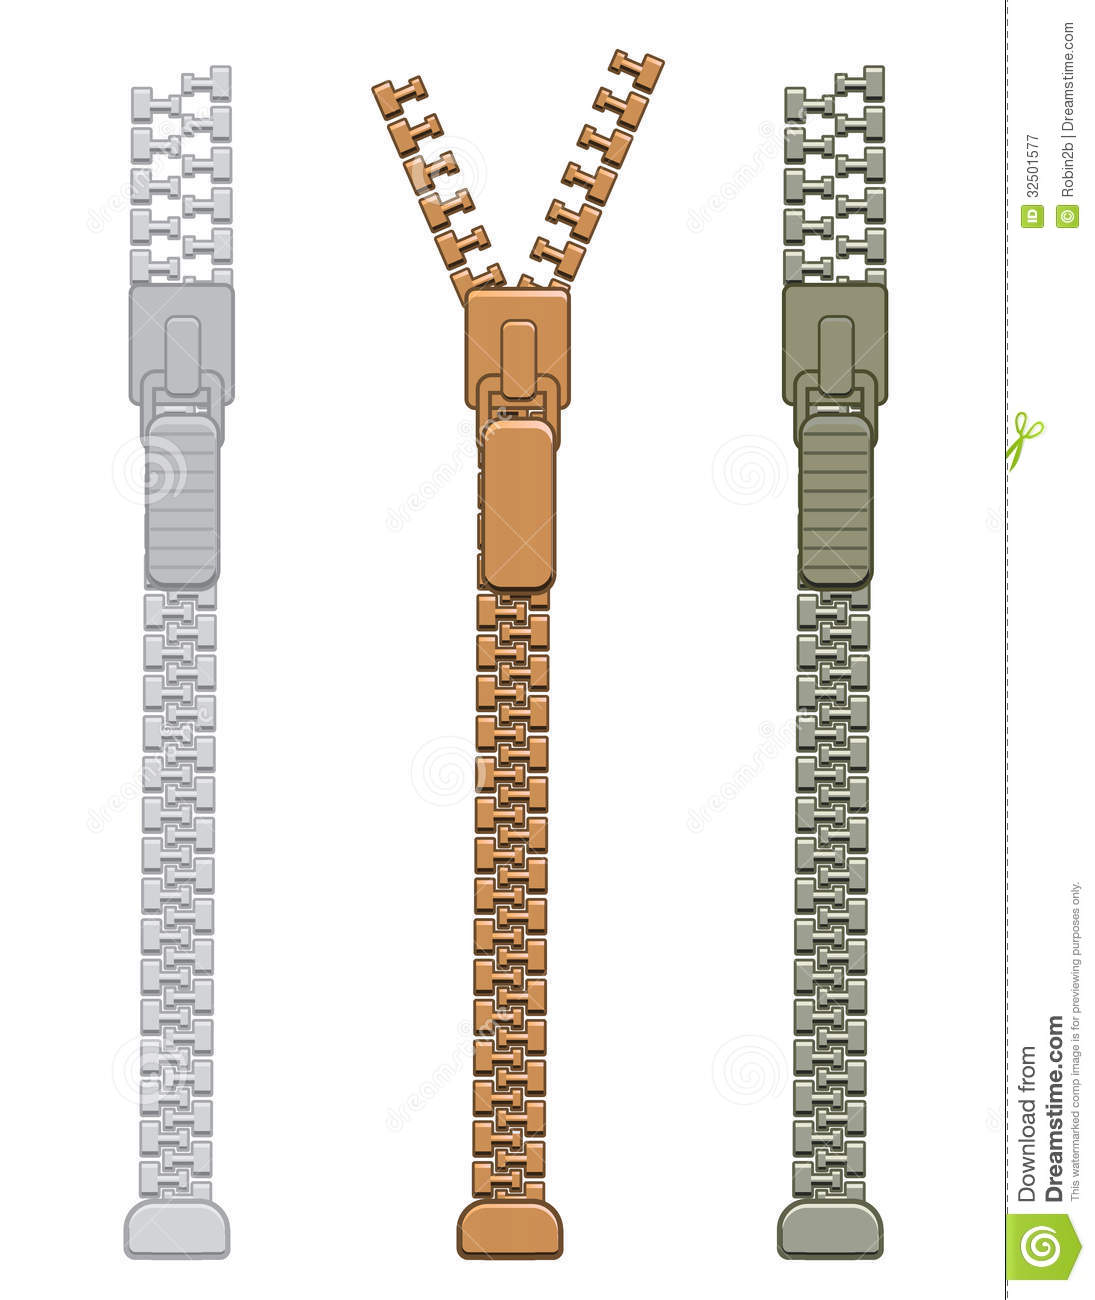 Zipper Royalty Free Stock Photography - Image: 32501577